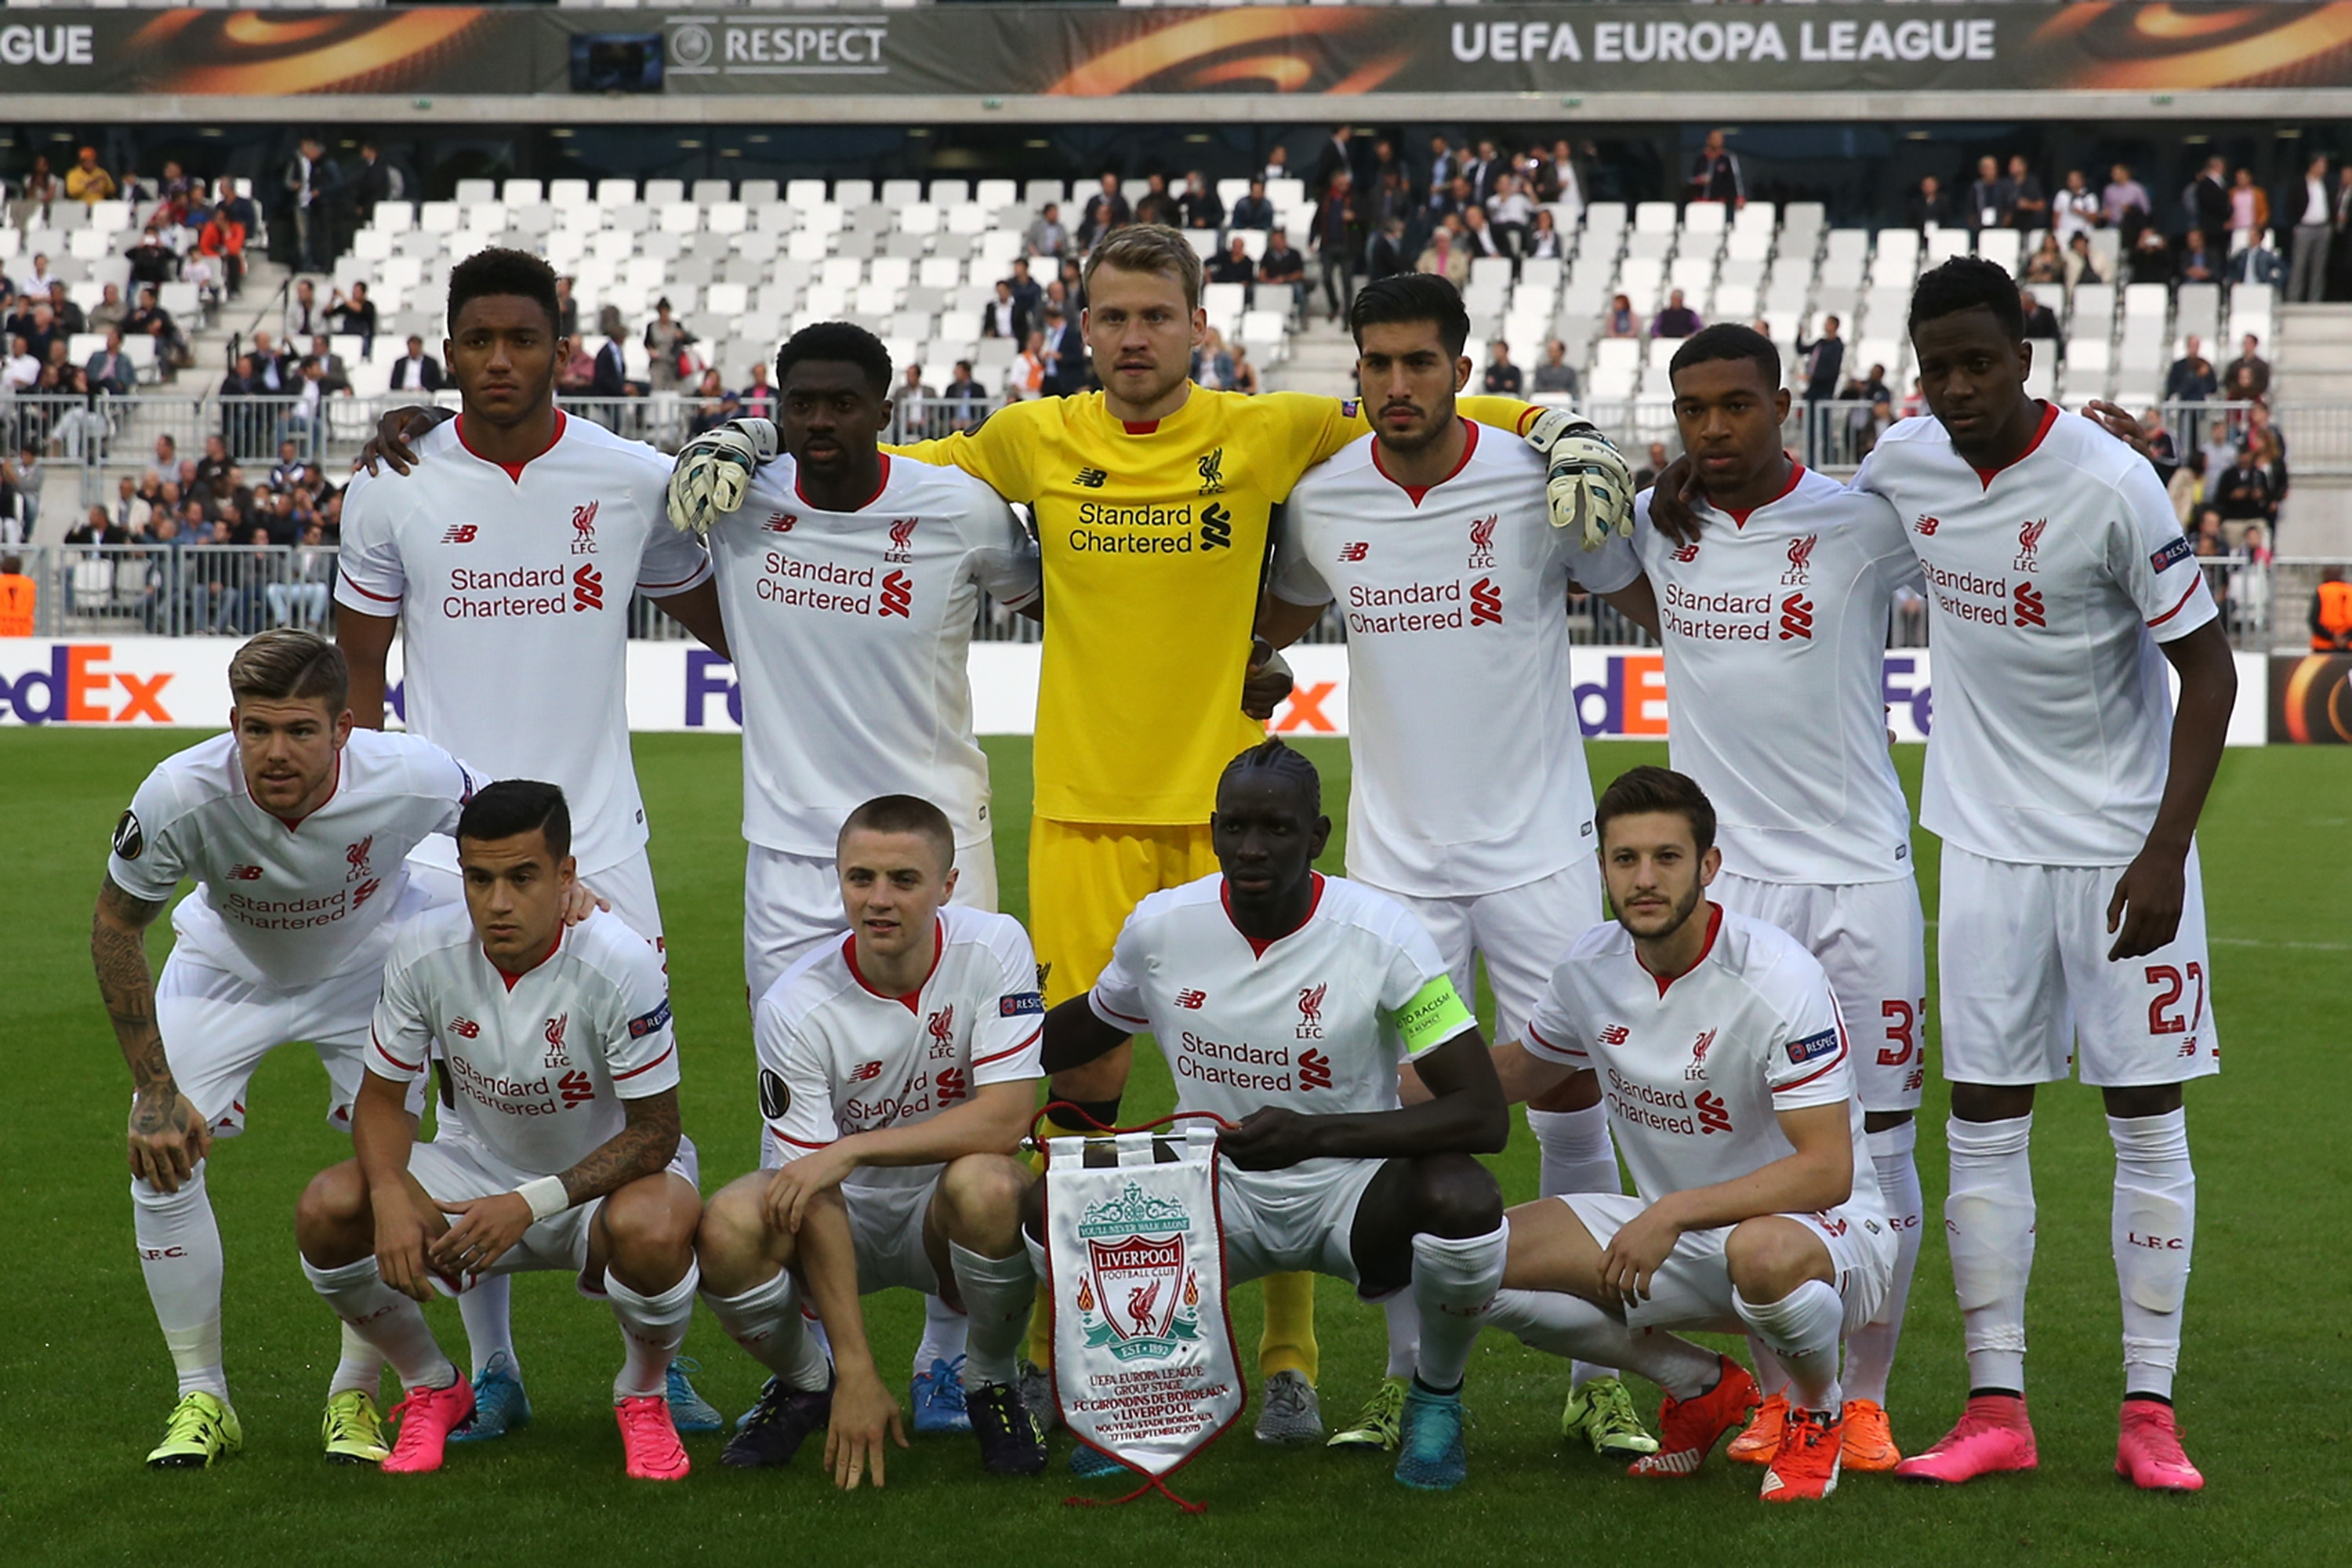 Joe Gomez (back left) and Jordan Rossiter (front, second from the left) line up for Europa League action with Liverpool against Bordeaux back in September (Romain Perrocheau/Getty Images)